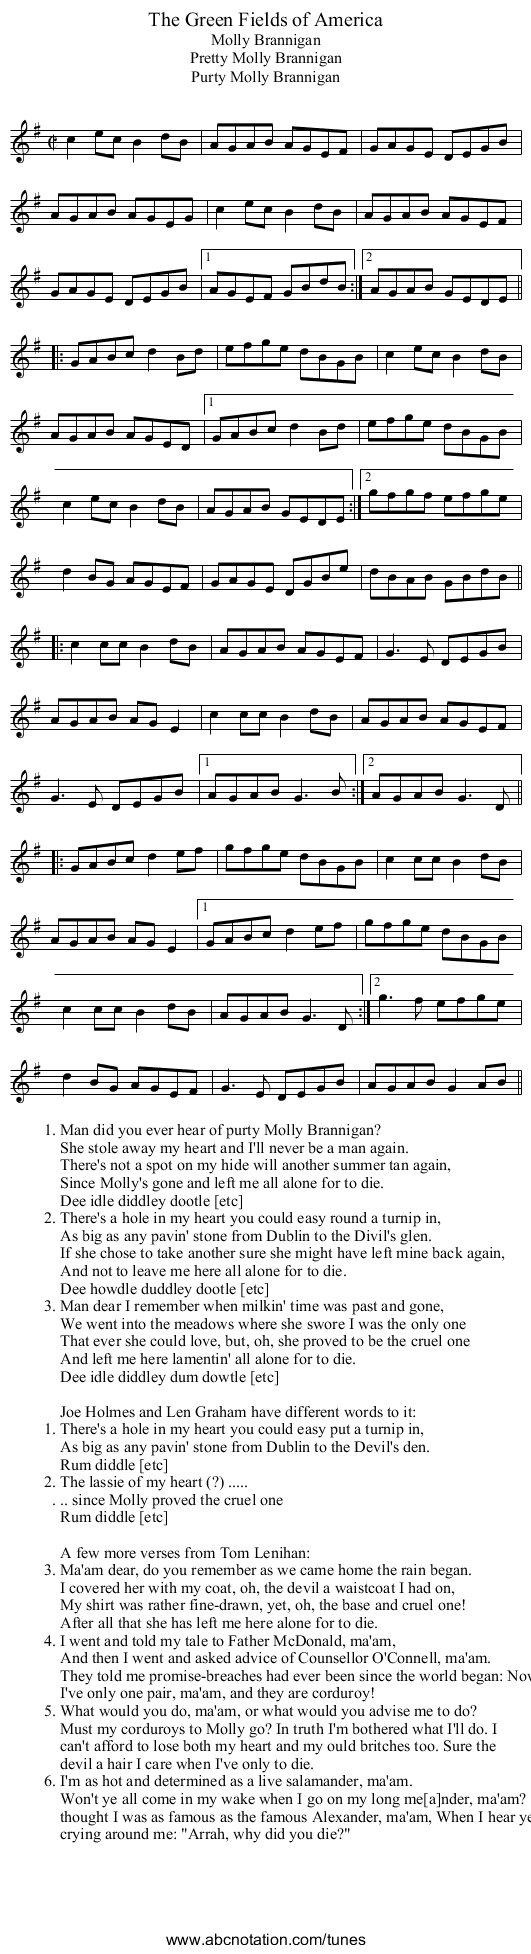 Green Fields of America, The - staff notation